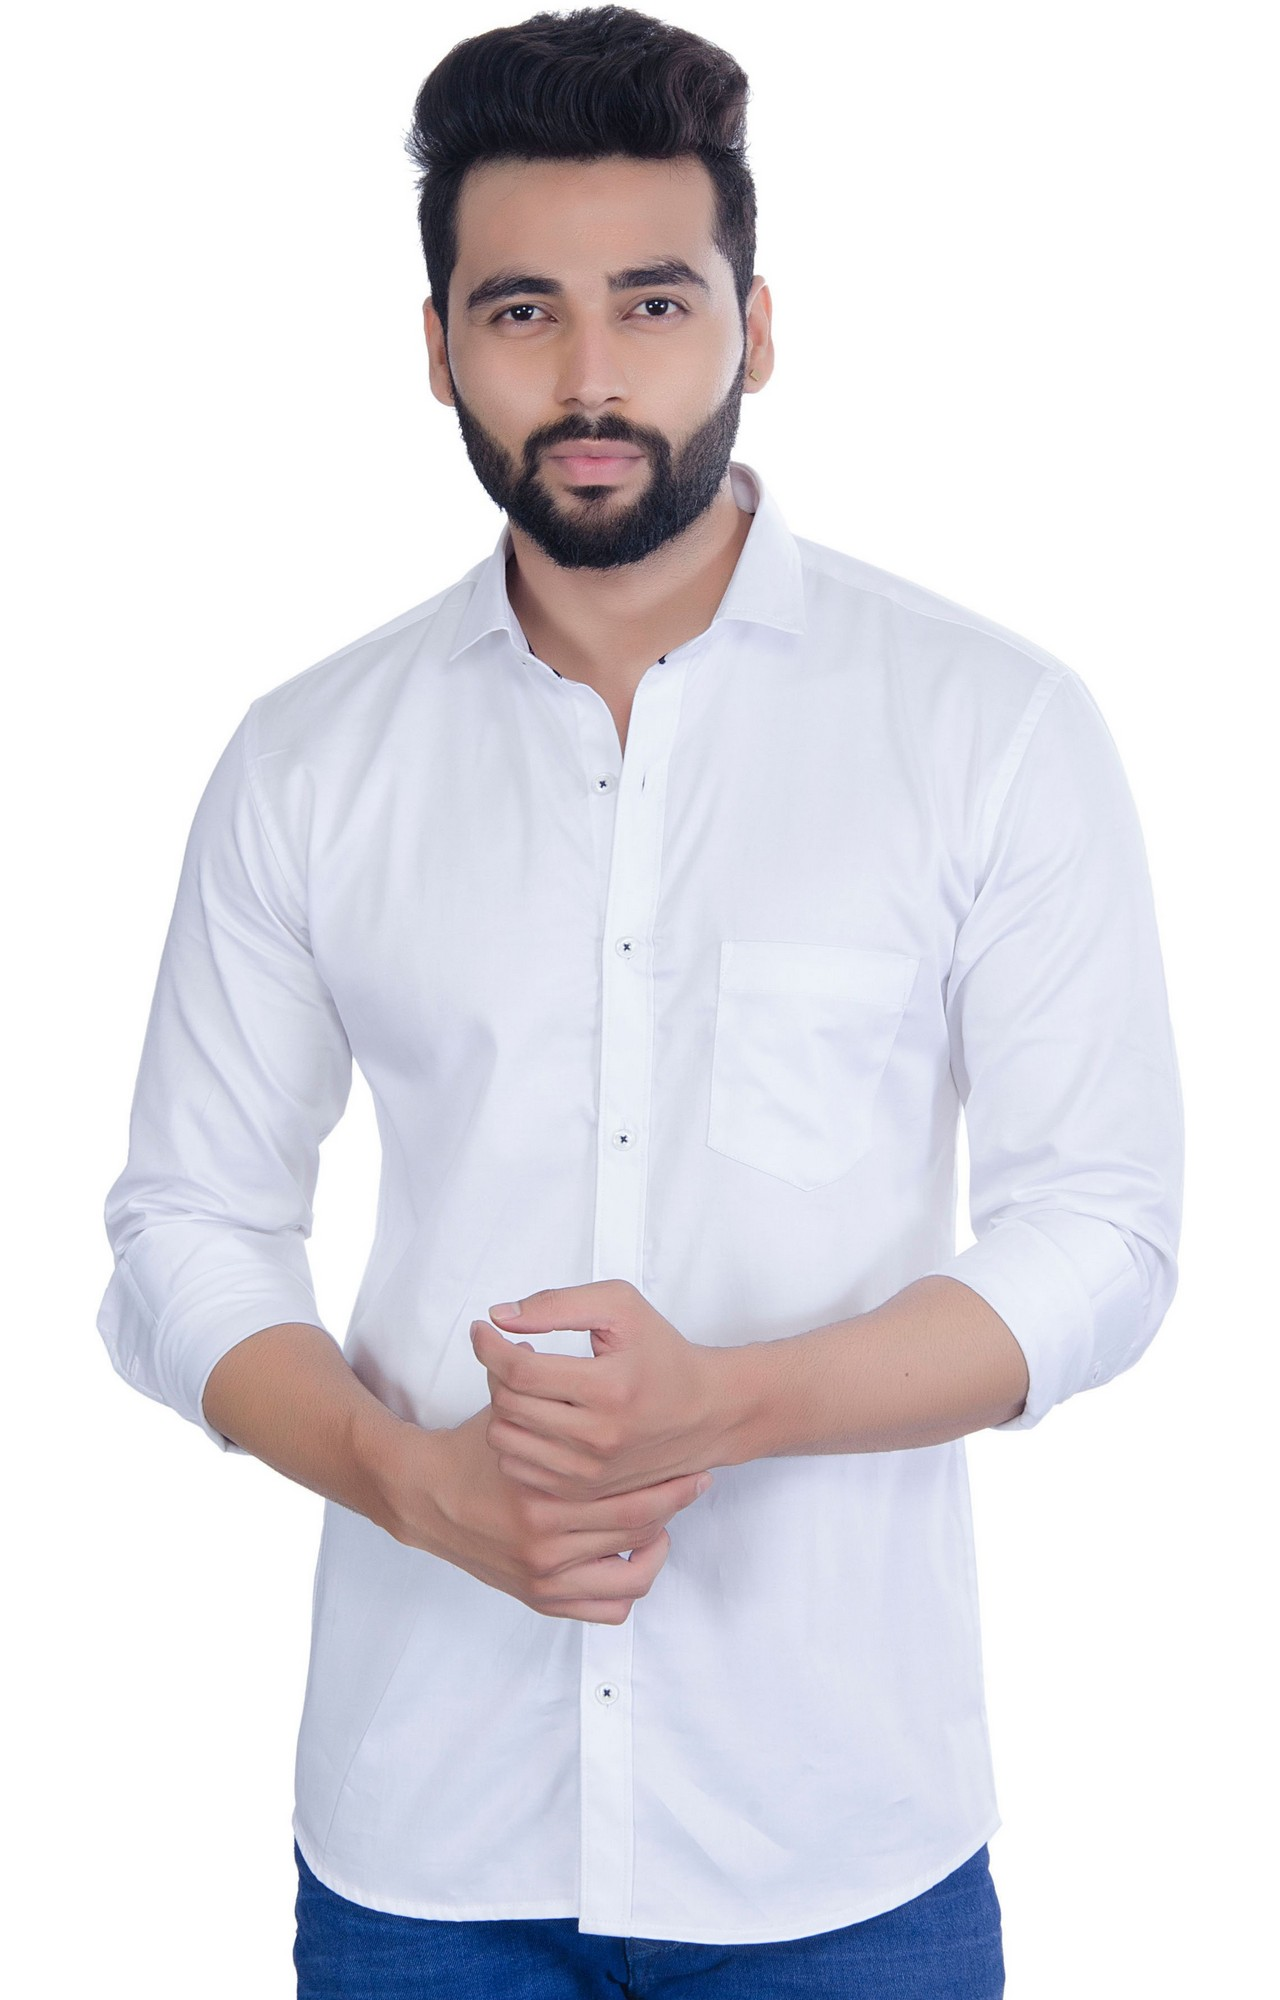 5th Anfold | FIFTH ANFOLD Men's White Casual Slim Collar Full/Long Sleev Slim Fit Shirt